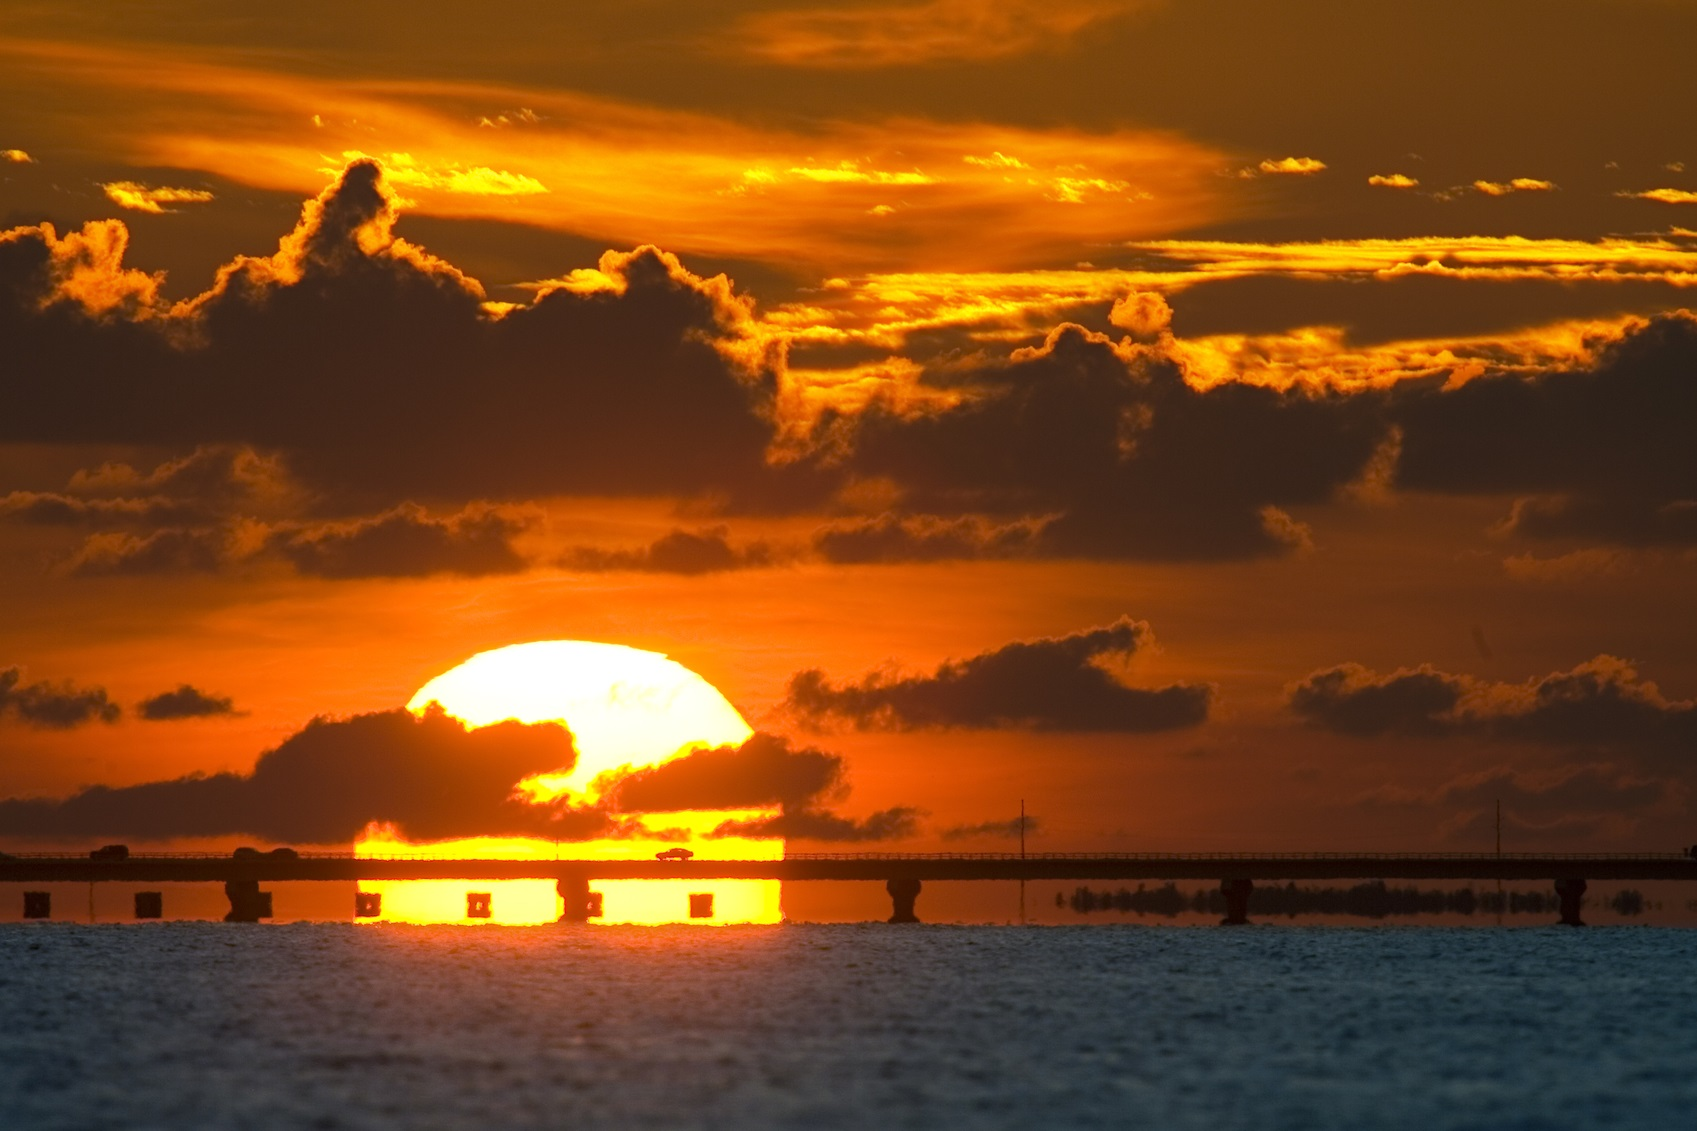 Best Spots To View A Sanibel Island Sunset